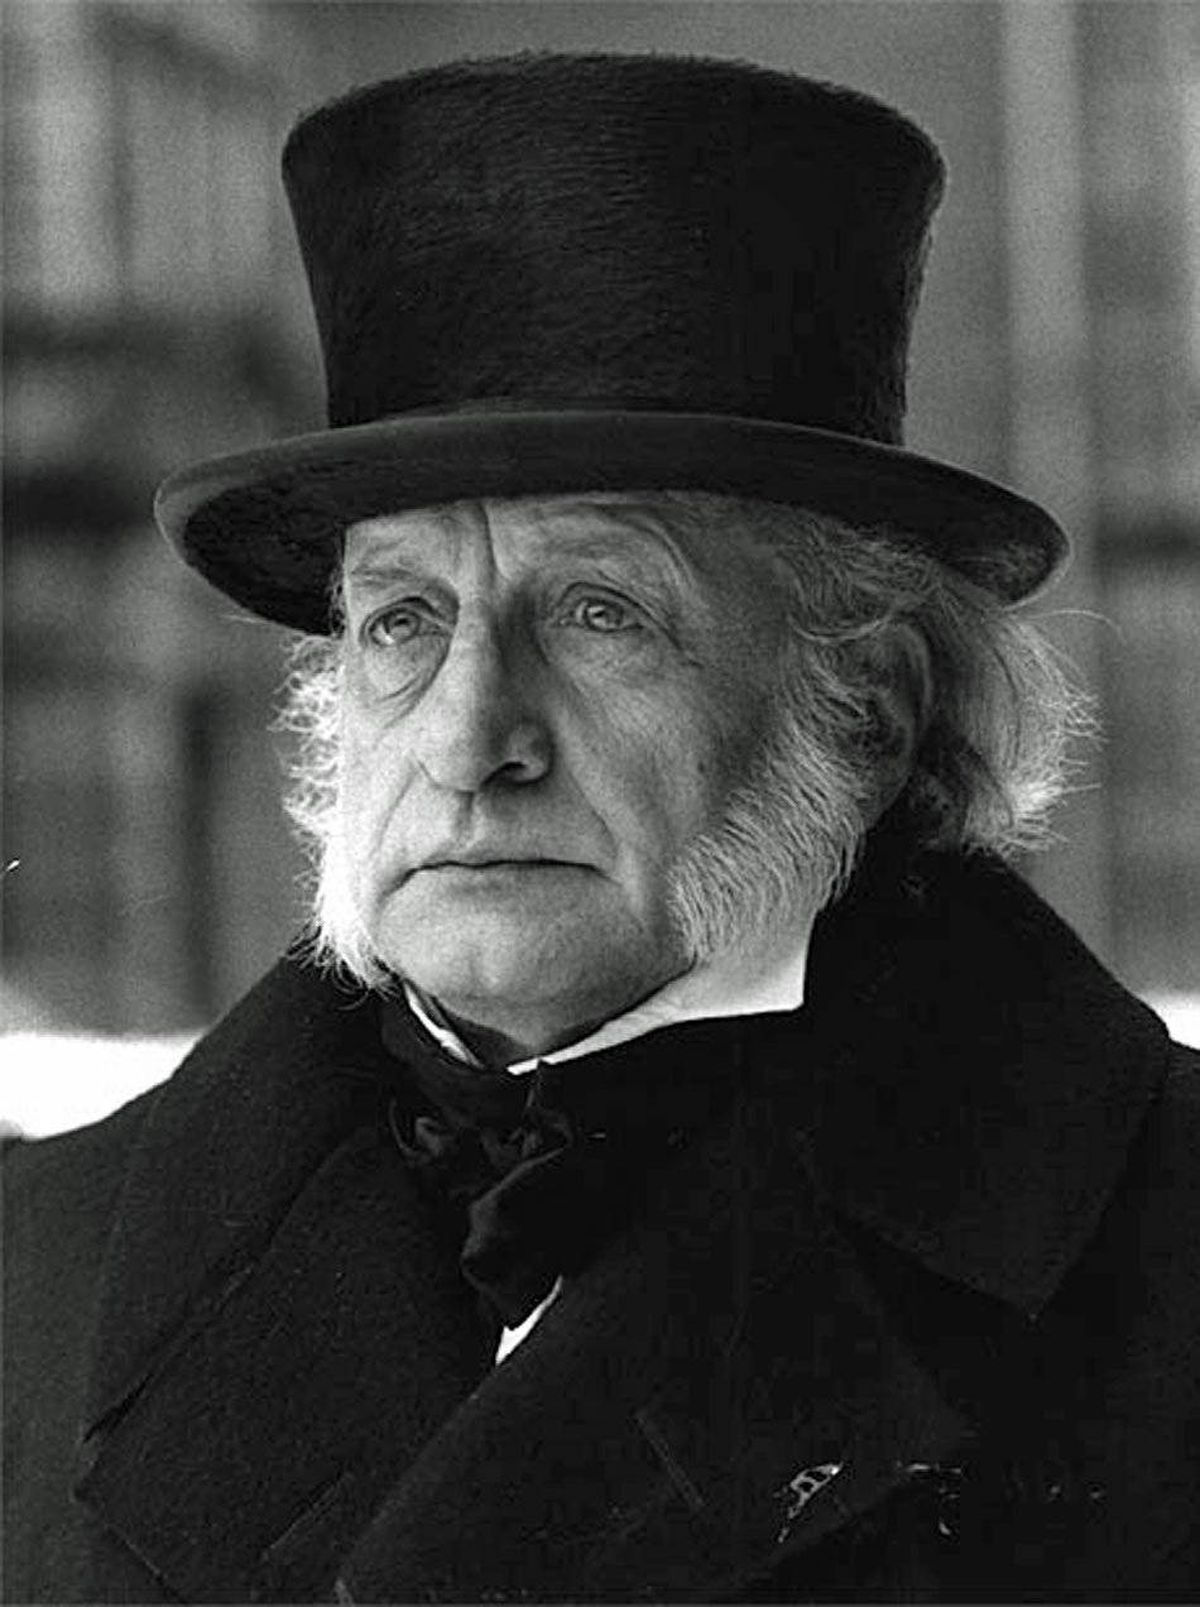 MOVIE A Christmas Carol AMC, 10:30 p.m. First shown on CBS in 1984, this TV-movie boasts a remarkable performance by George C. Scott as the man who hates Christmas. The Oscar-winning actor is completely in his element as the curmudgeonly Ebenezer Scrooge, who takes out his rage at the world upon his only employee, the cringing Bob Cratchit (David Warner). British acting veteran Susannah York delivers a strong supporting turn as Cratchit's long-suffering wife.